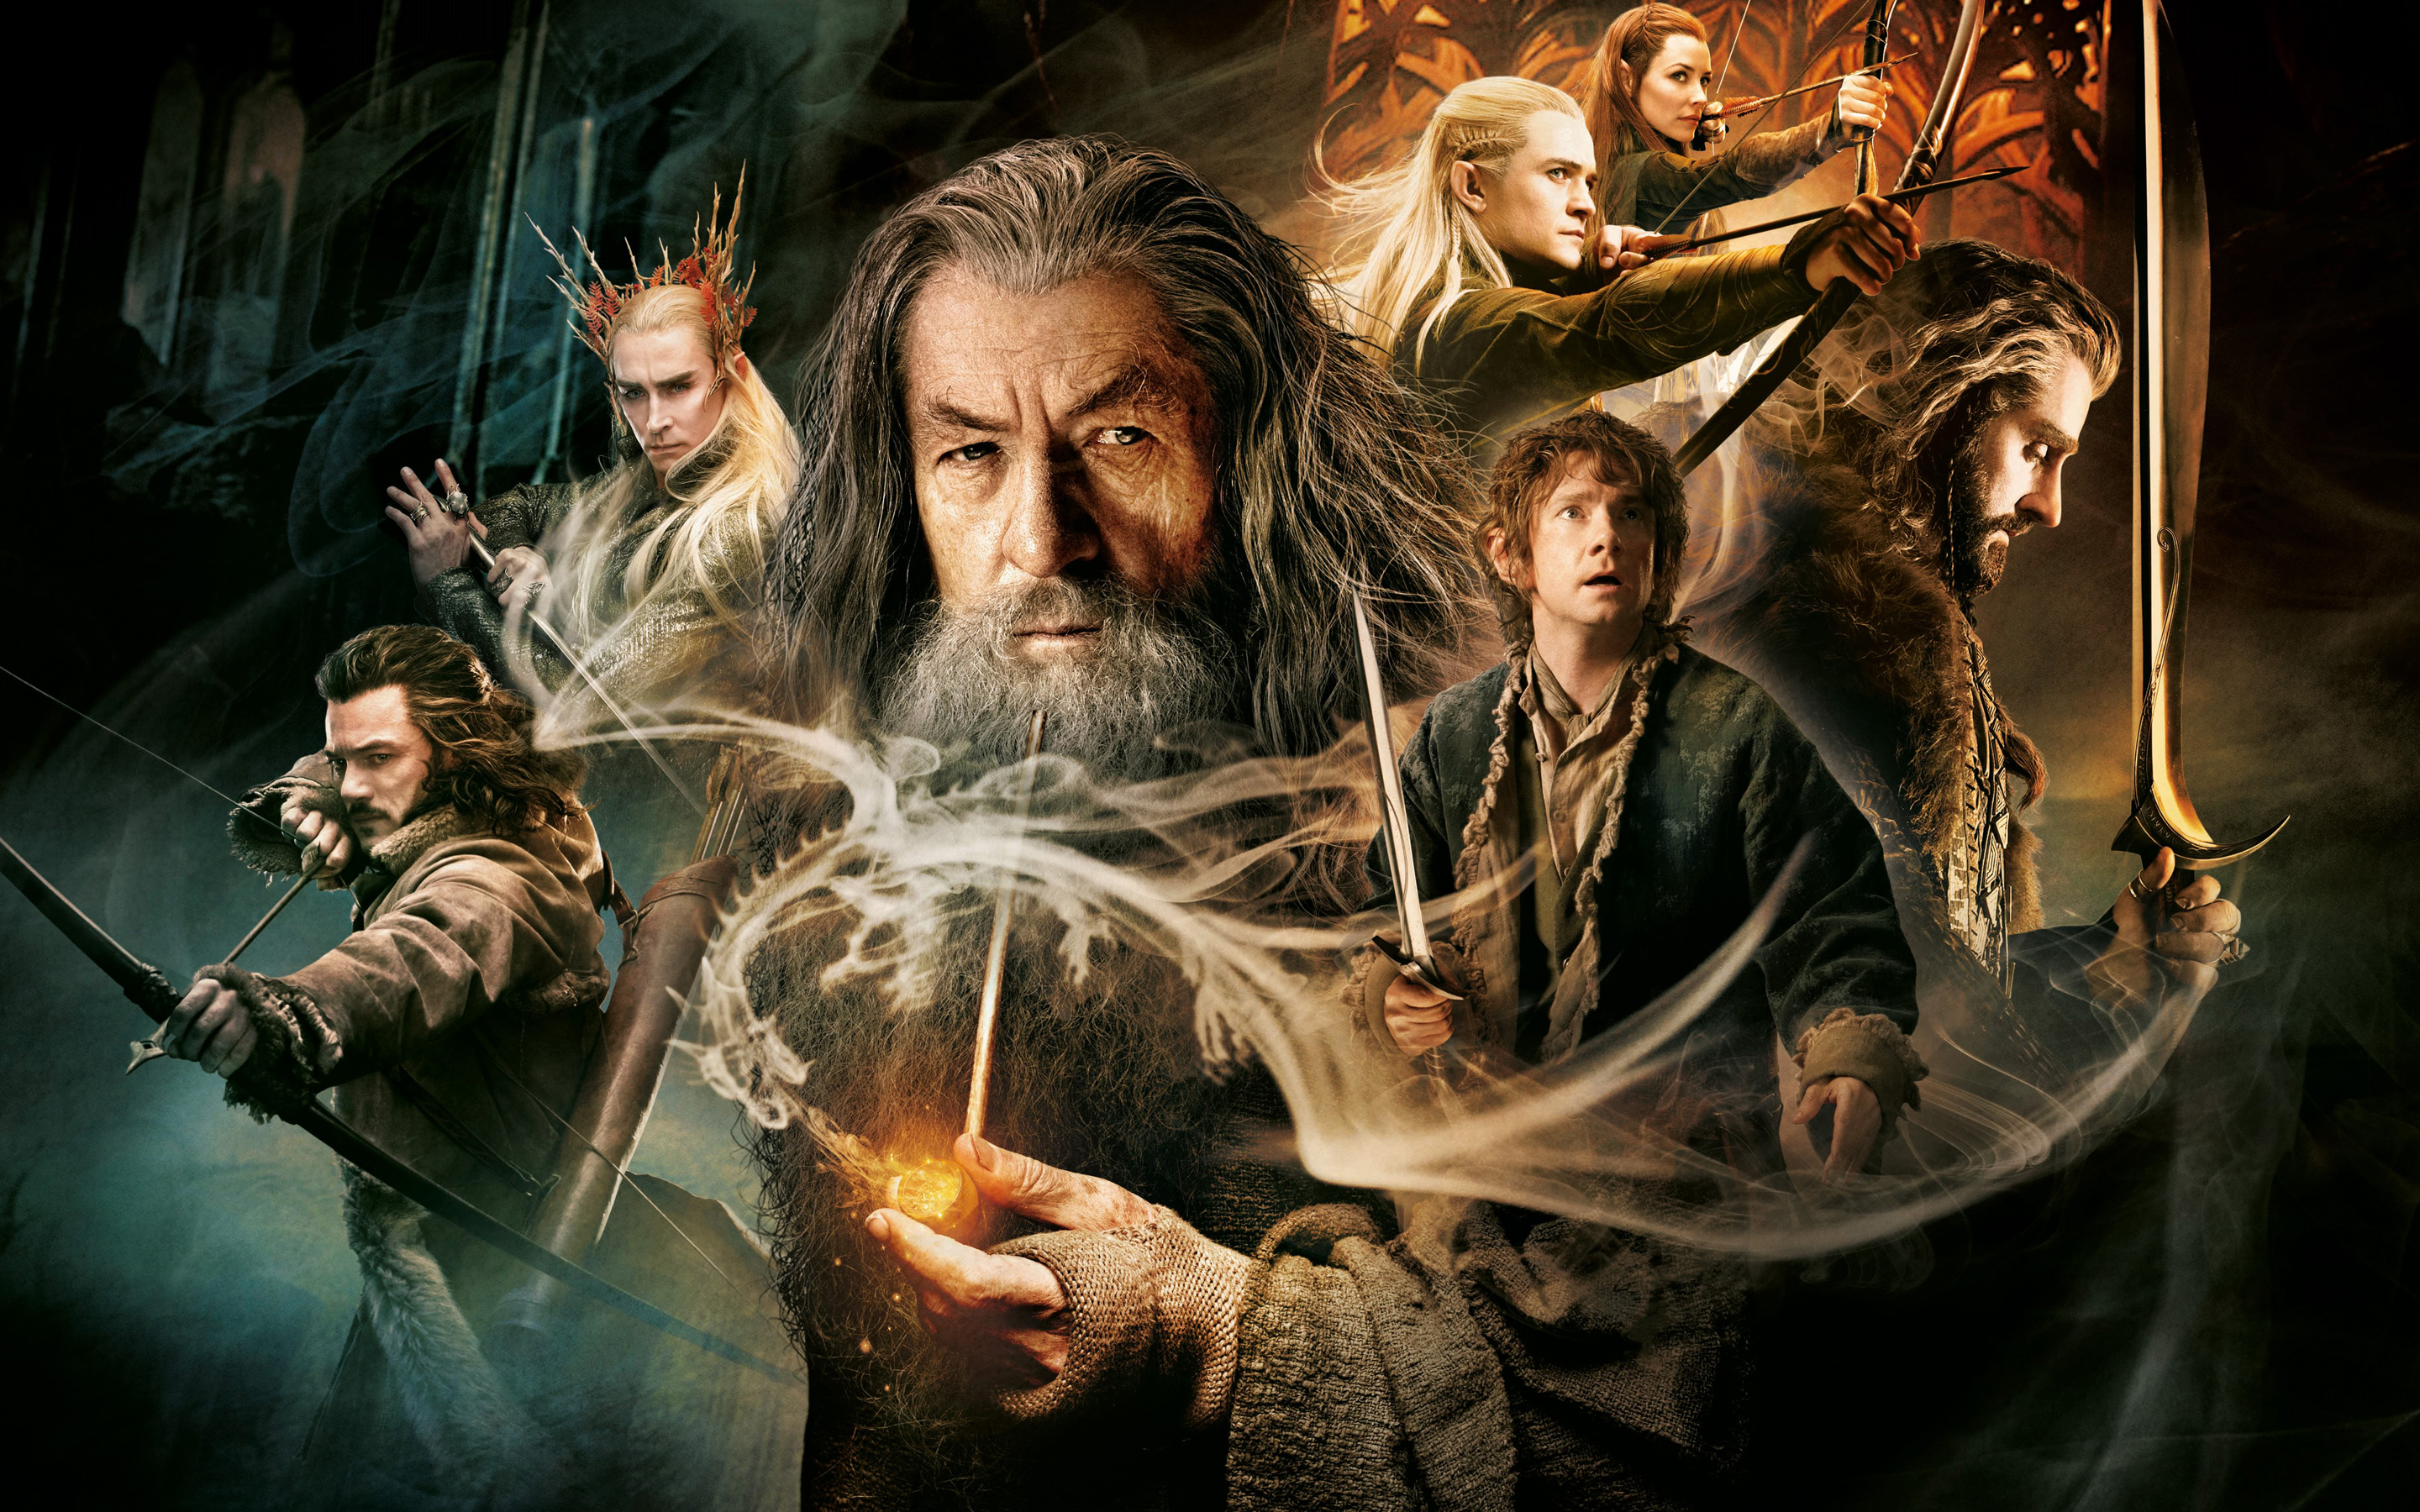 the hobbit movie wallpapers - photo #40